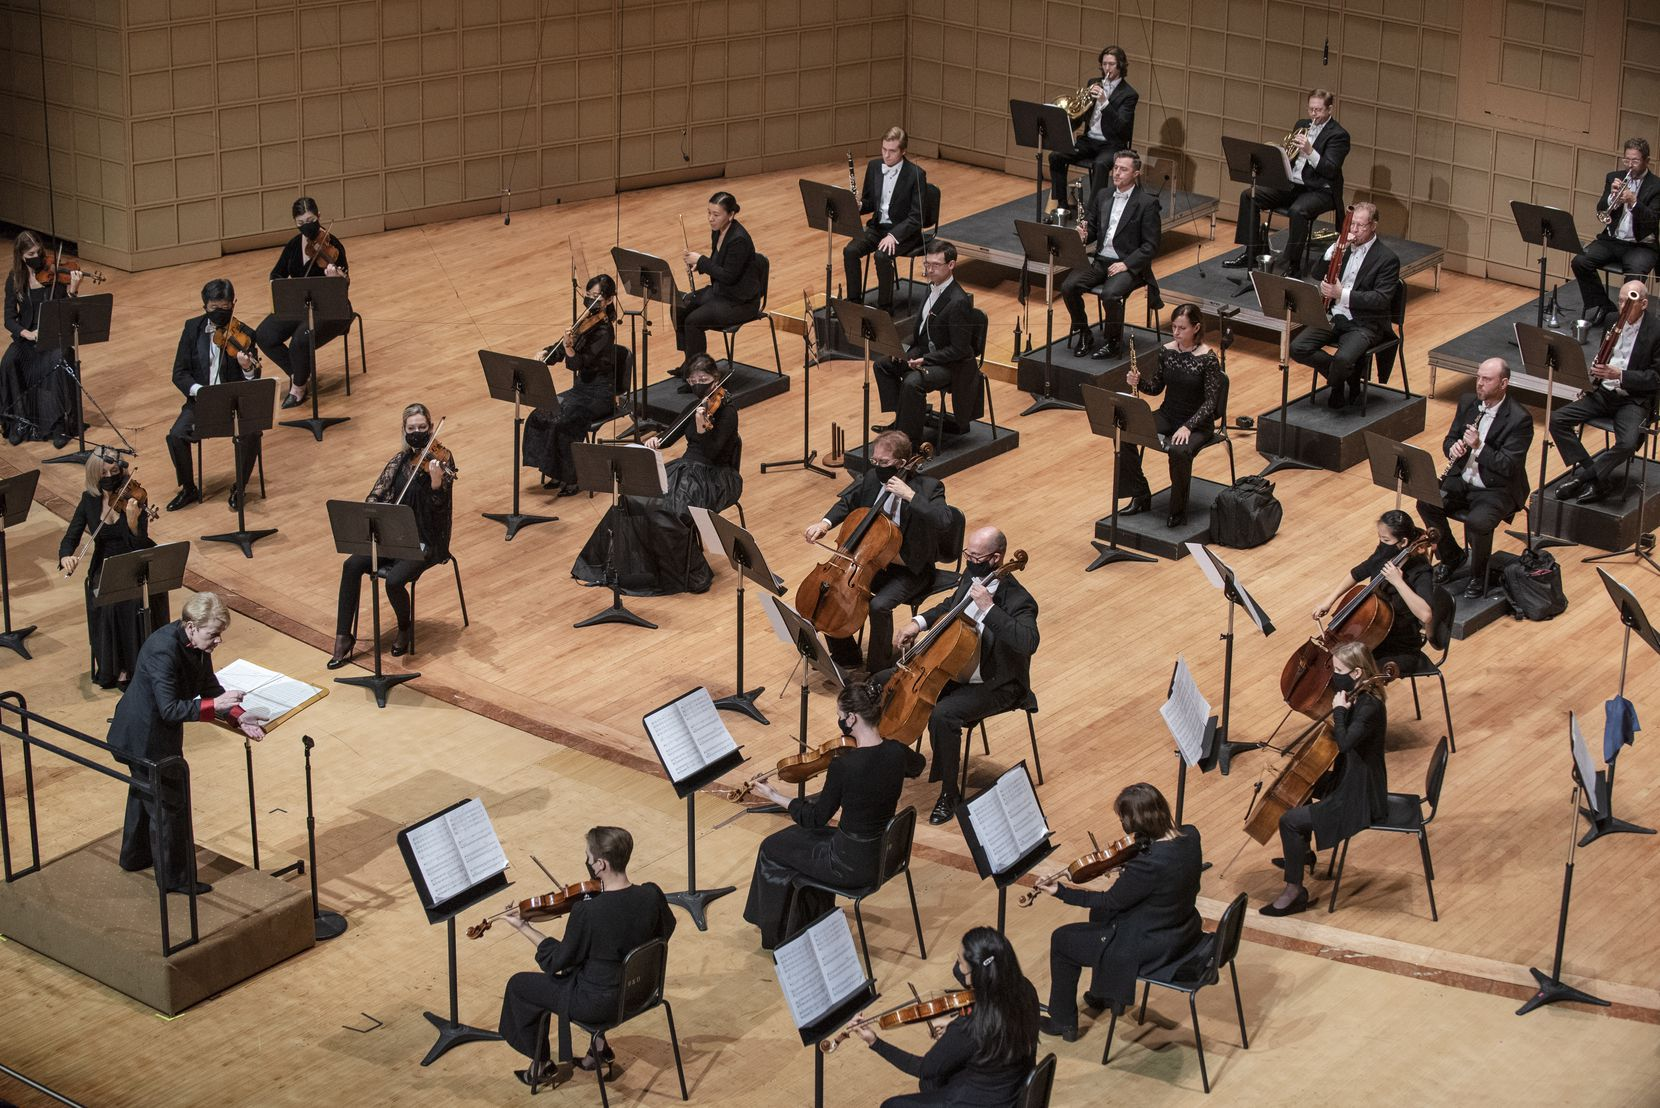 Conductor Marin Alsop conducts the Dallas Symphony Orchestra during a performance of 'Absence' by Magnus Lindberg, at the Morton H. Meyerson Symphony Center in Dallas, on Thursday, Nov. 5.